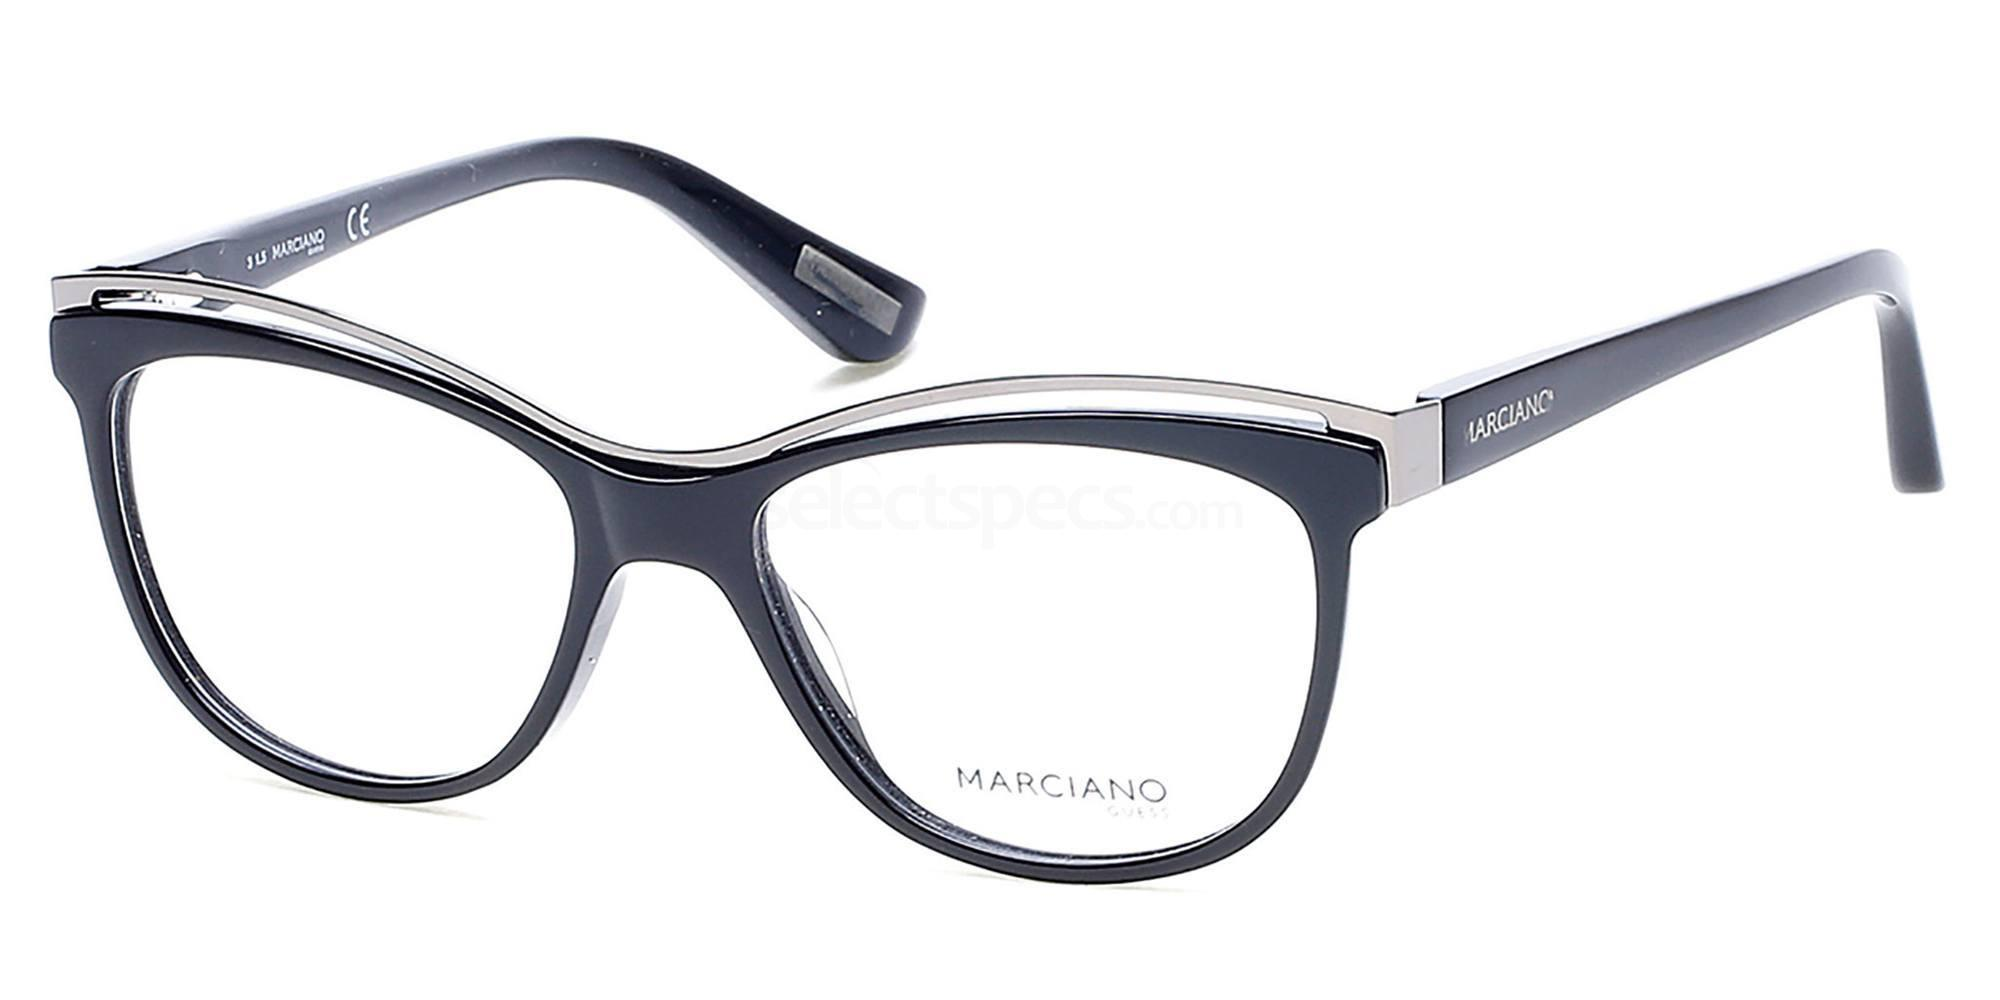 001 GM0275 Glasses, Guess by Marciano